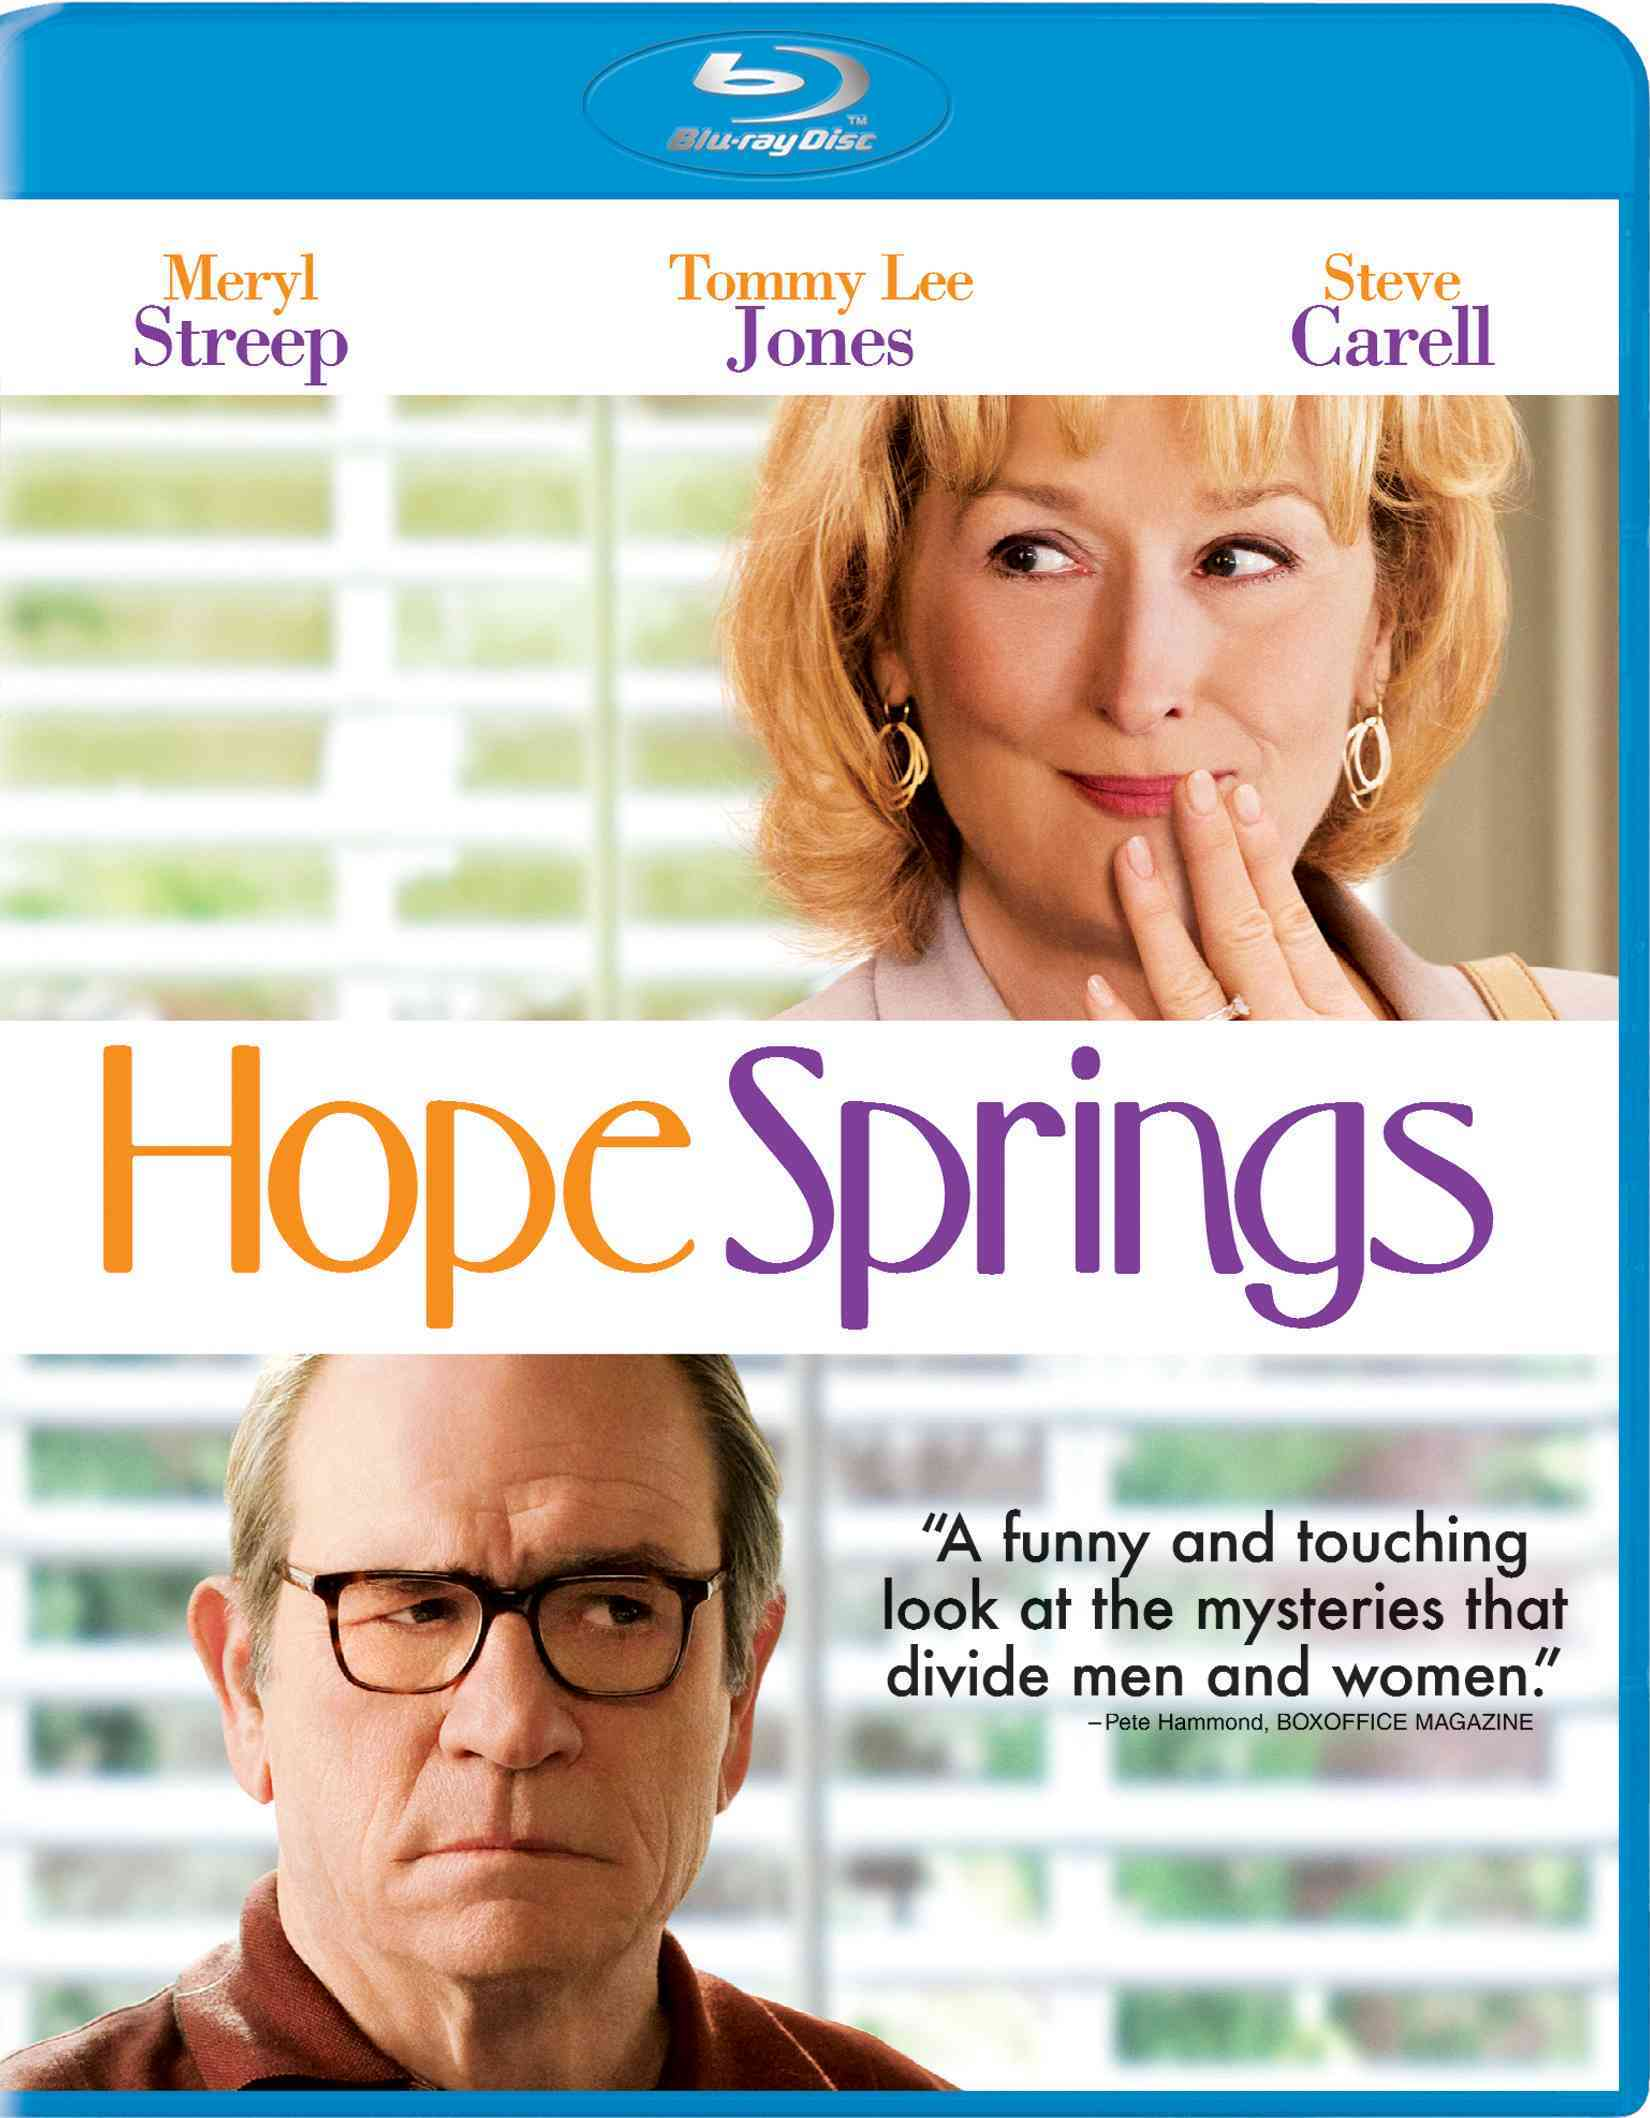 HOPE SPRINGS BY STREEP,MERYL (Blu-Ray)